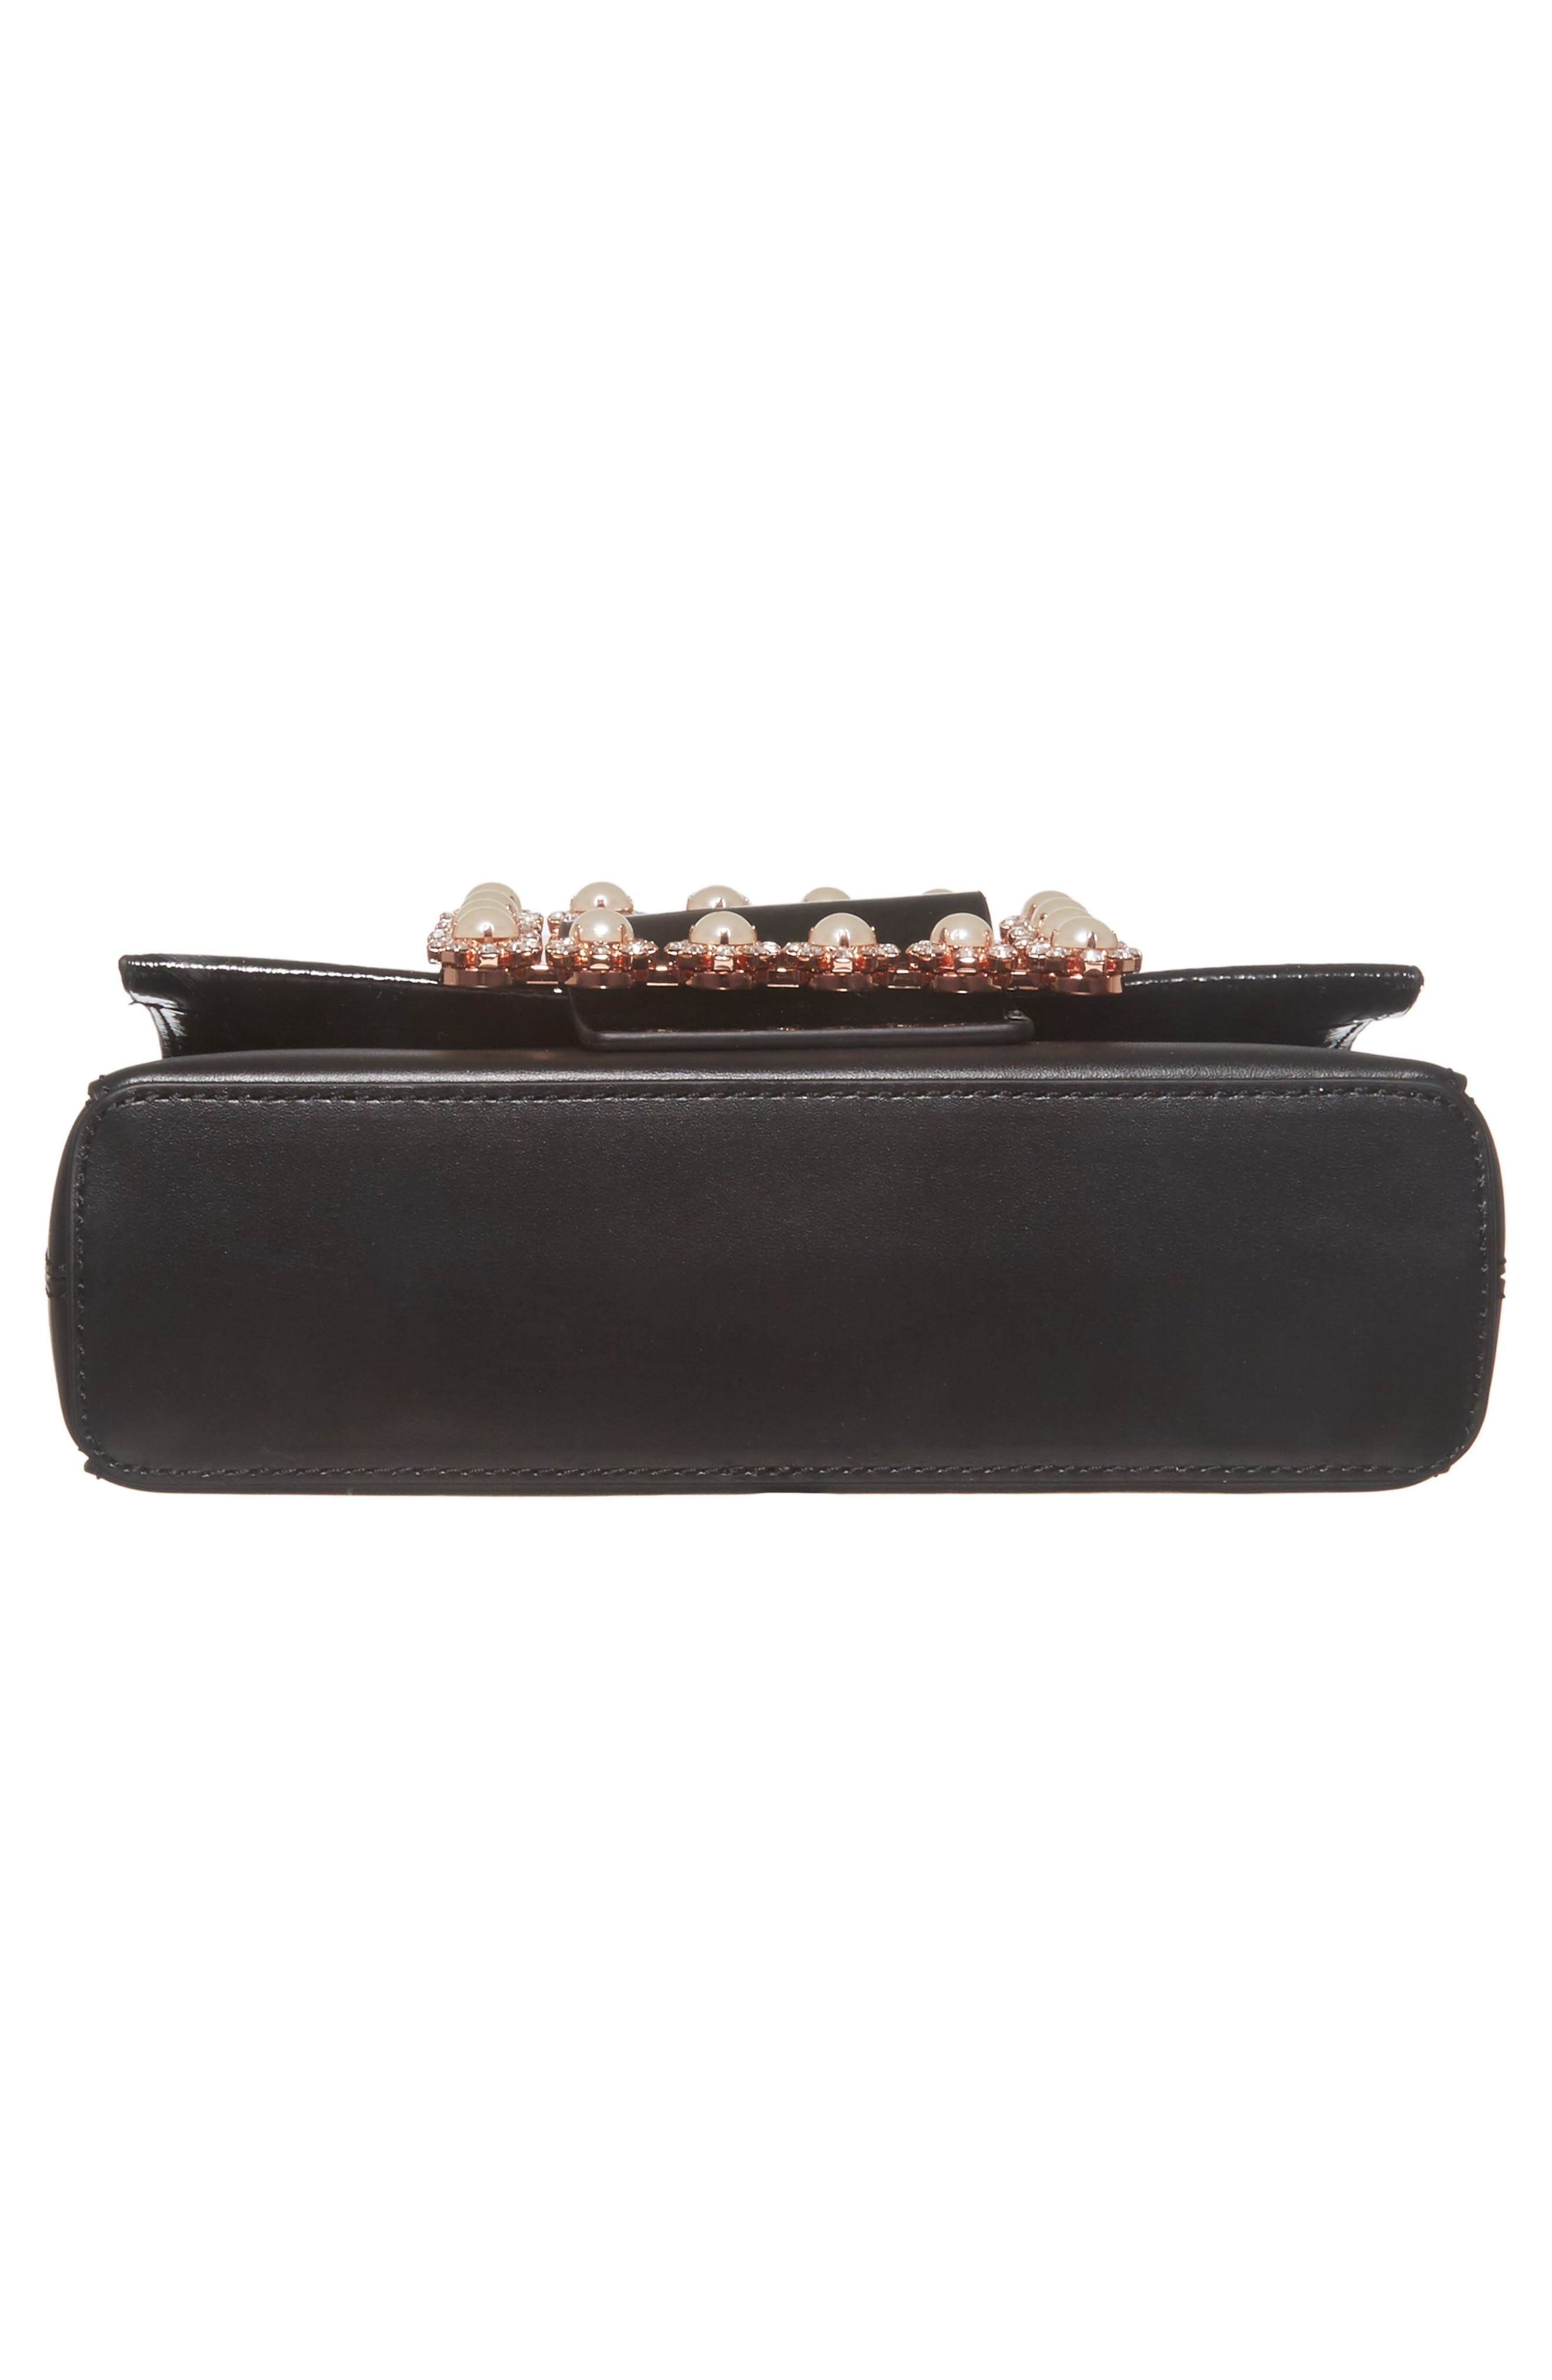 Peonyy Embellished Buckle Leather Clutch,                             Alternate thumbnail 5, color,                             Black